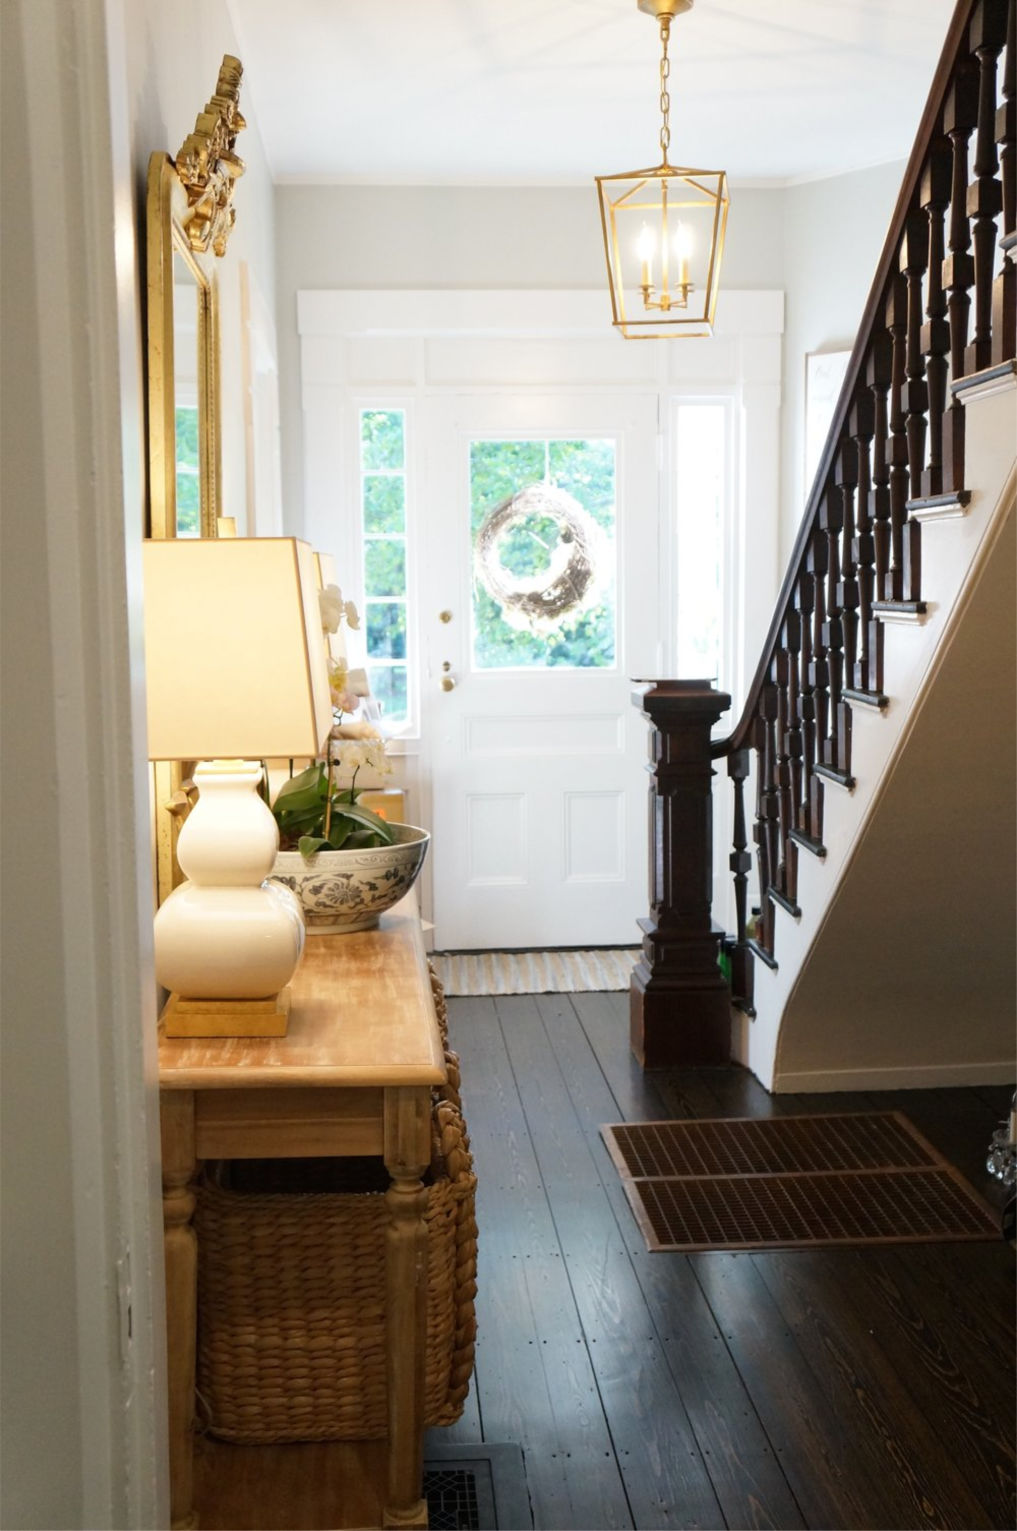 Eclectic Home Tour Finding Lovely - this beautiful old home has been updated but keeps it's charming details like the wood banister and original wood floors kellyelko.com #foyer #entry #oldhome #vintagestyle #vintagedecor #farmhousestyle #farmhouse #interiordecorate #interiordesign